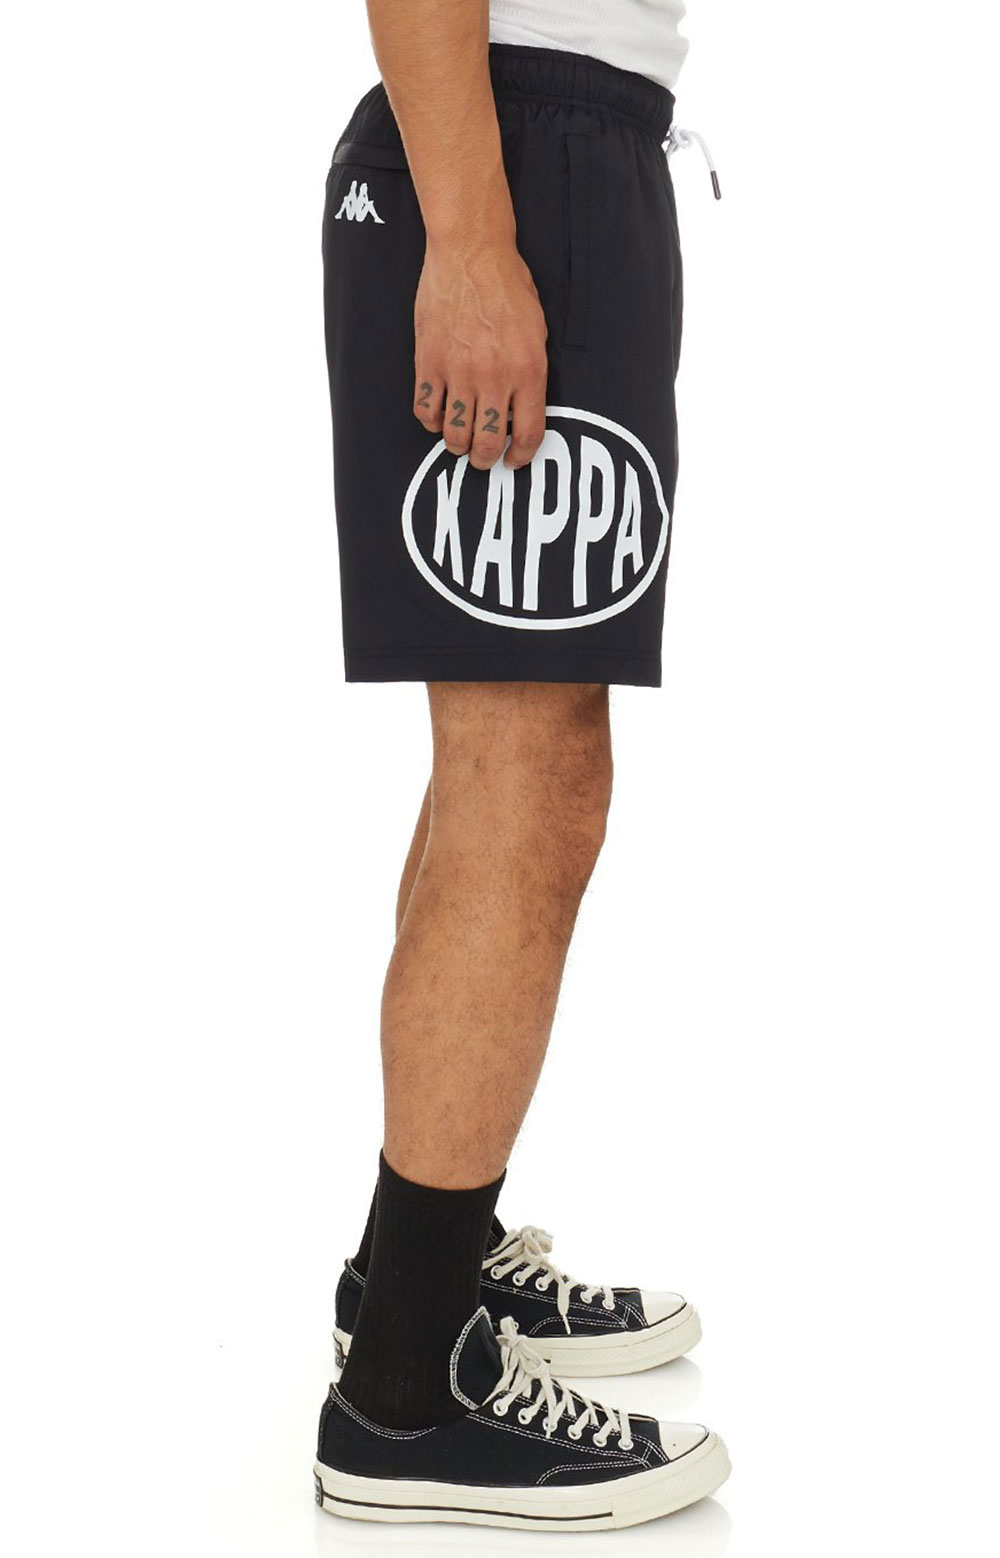 Authentic Pop Emay Shorts - Black/White  6